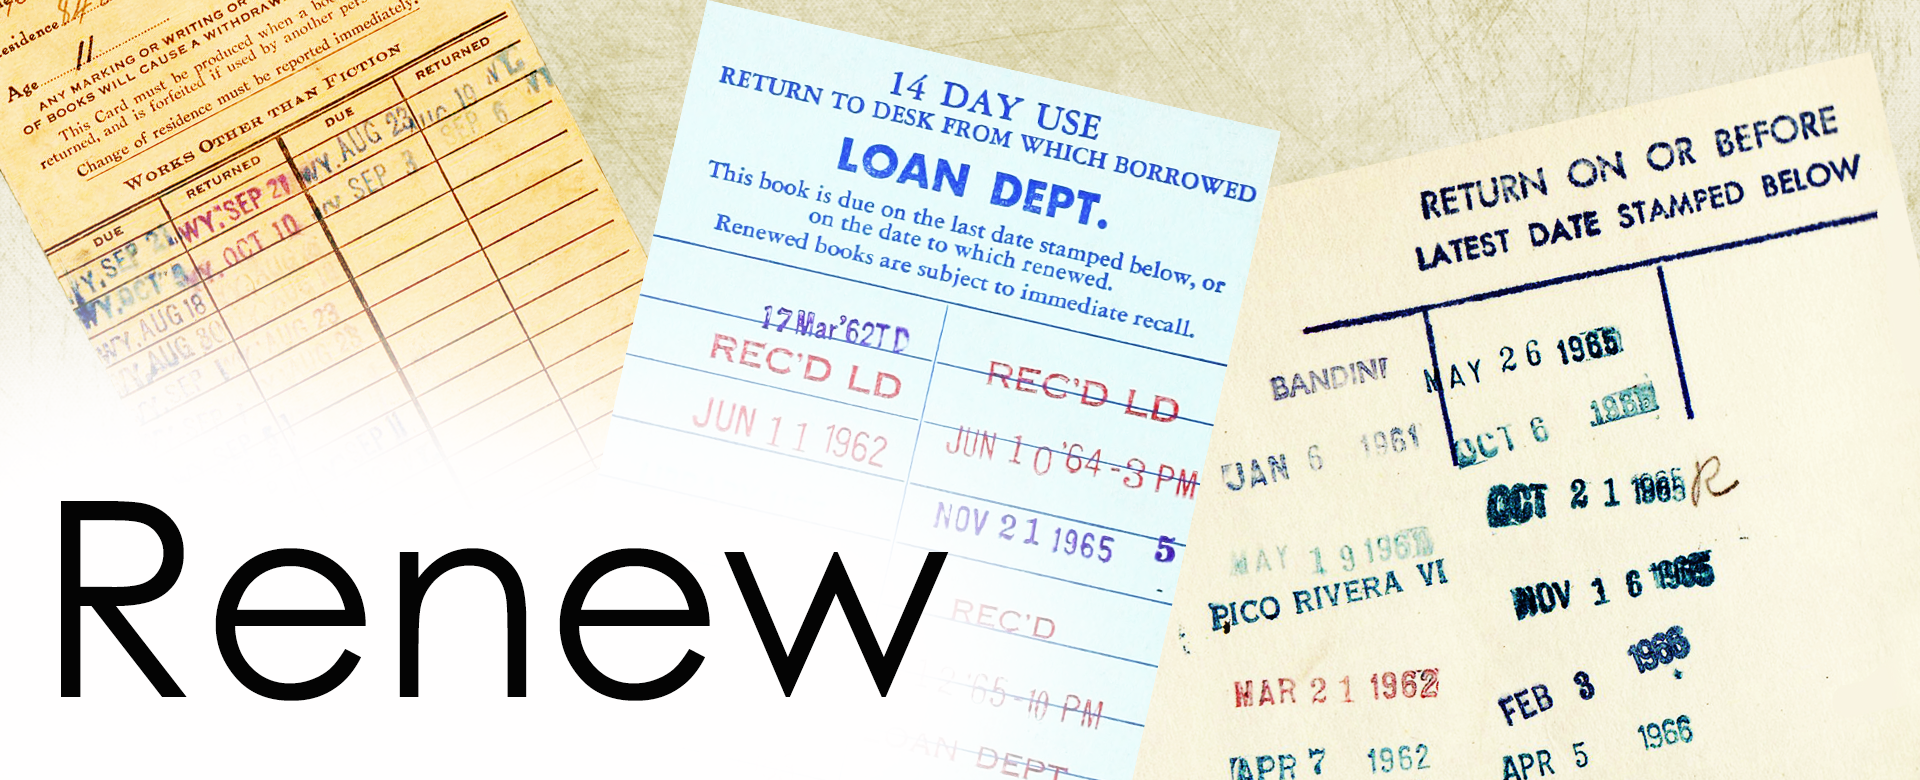 Renew title banner image with a background of old Library cards with due date stamps